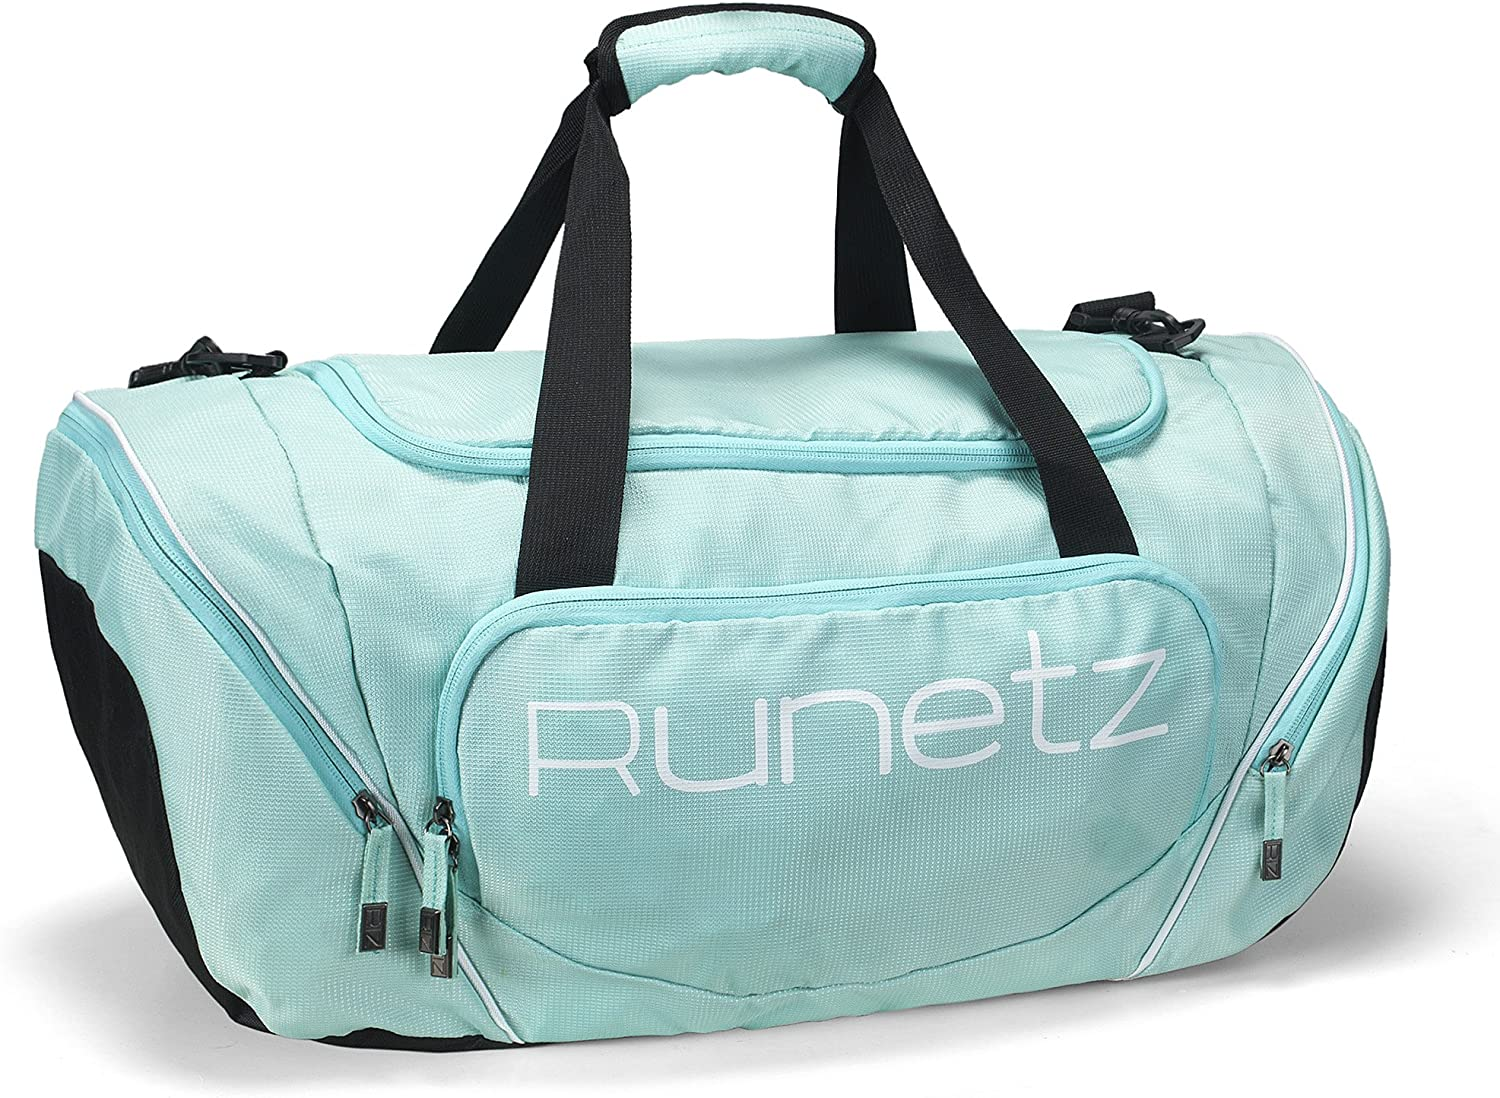 Runetz - Gym Bag for Women and Men - Ideal Workout Overnight Weekend Bag - Sport Duffle Bag - Large Size, 20